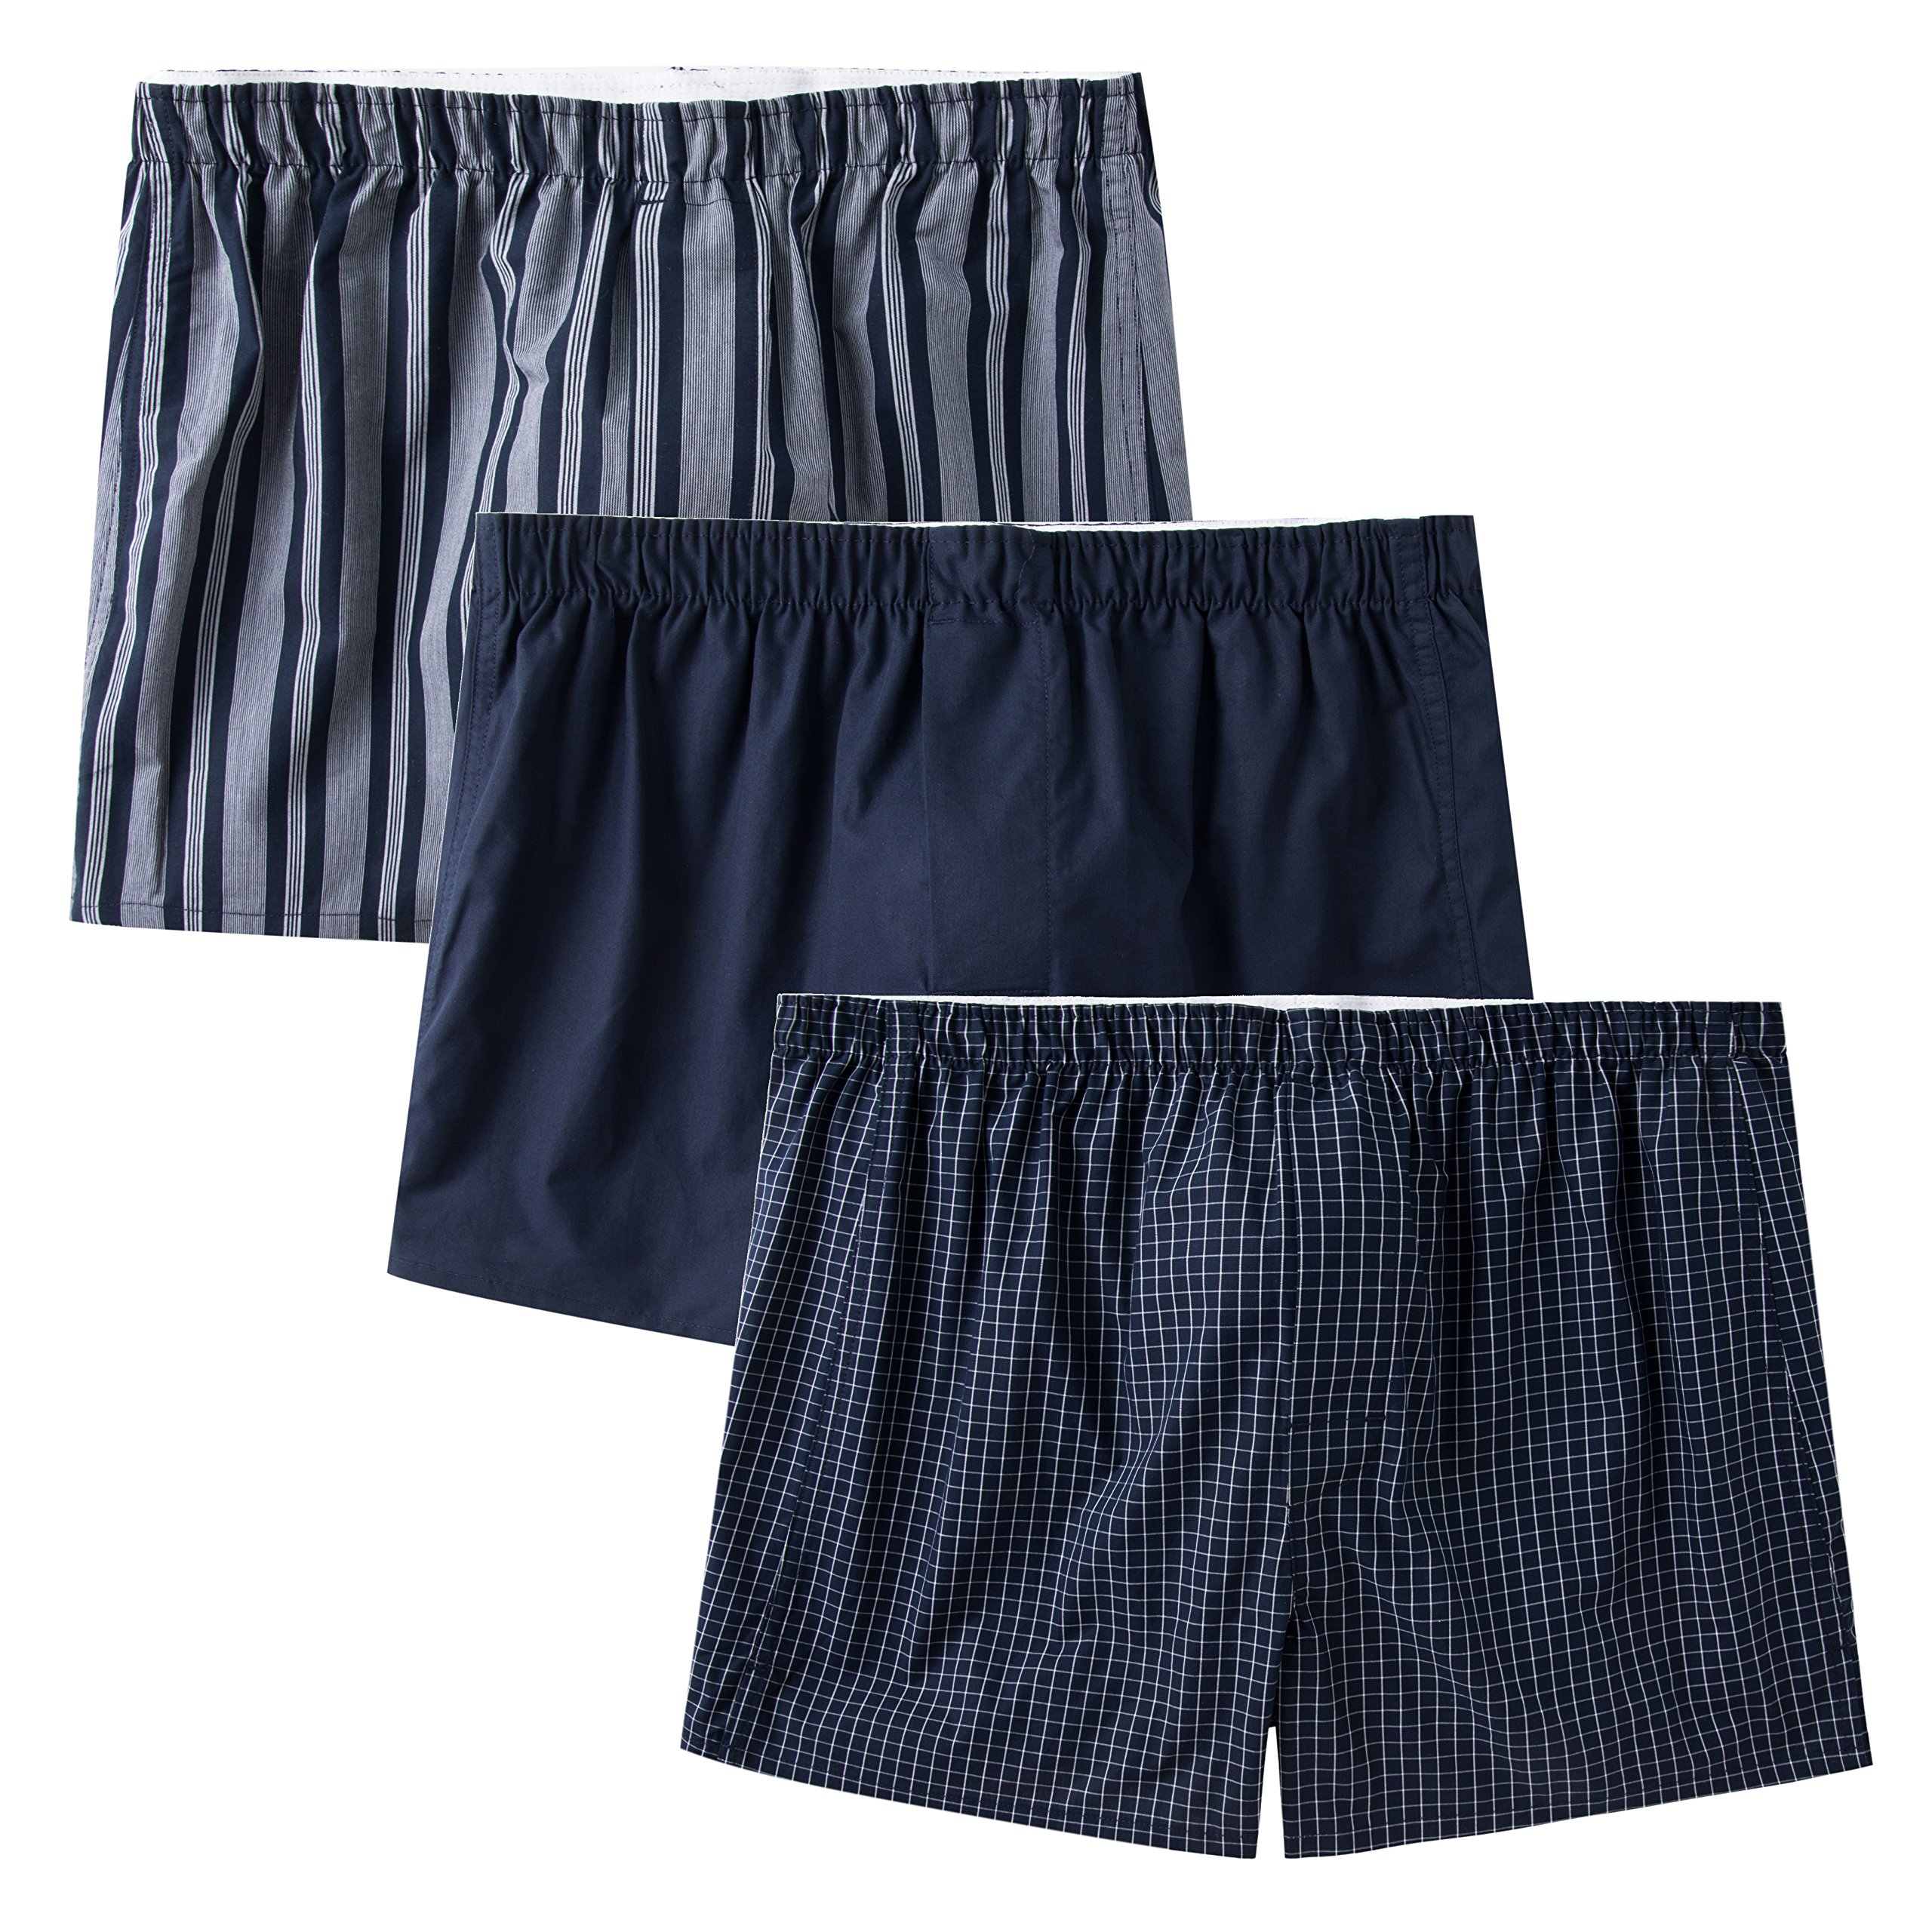 CYZ Men's 100% Cotton Classic Woven Boxers 3 Packs-StripeTideBluePlaid-XL